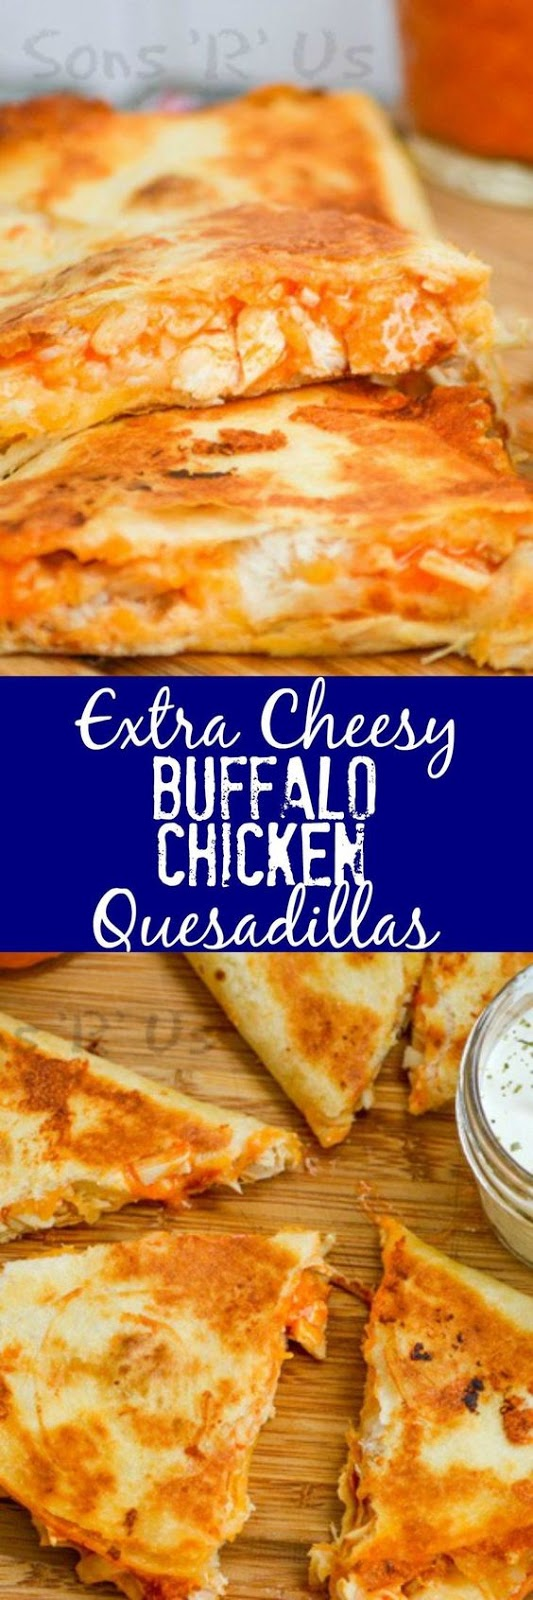 EXTRA CHEESY BUFFALO CHICKEN QUESADILLAS